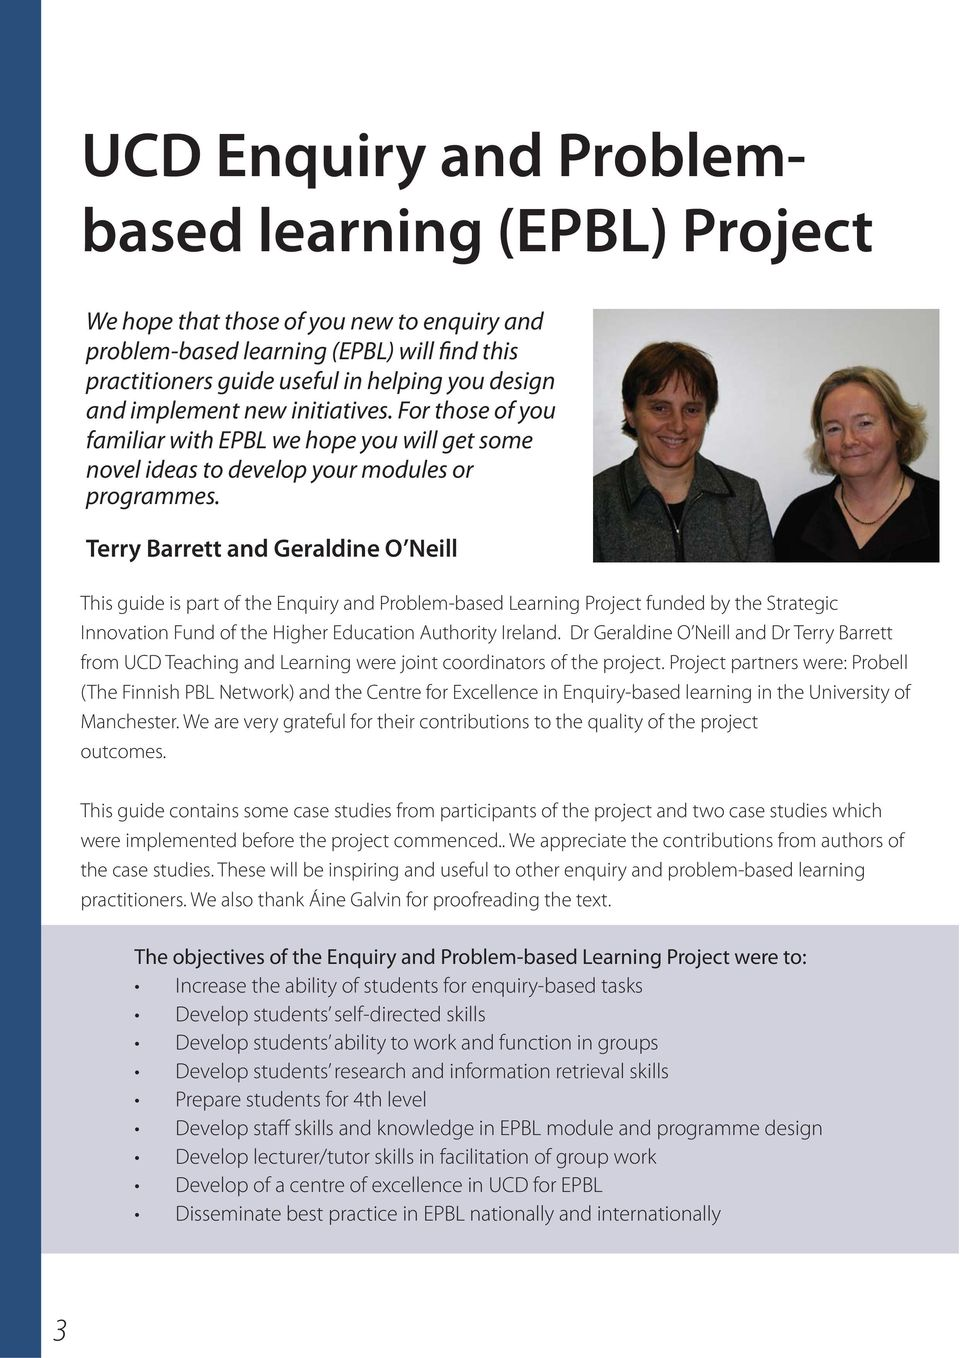 Terry Barrett and Geraldine O Neill This guide is part of the Enquiry and Problem-based Learning Project funded by the Strategic Innovation Fund of the Higher Education Authority Ireland.